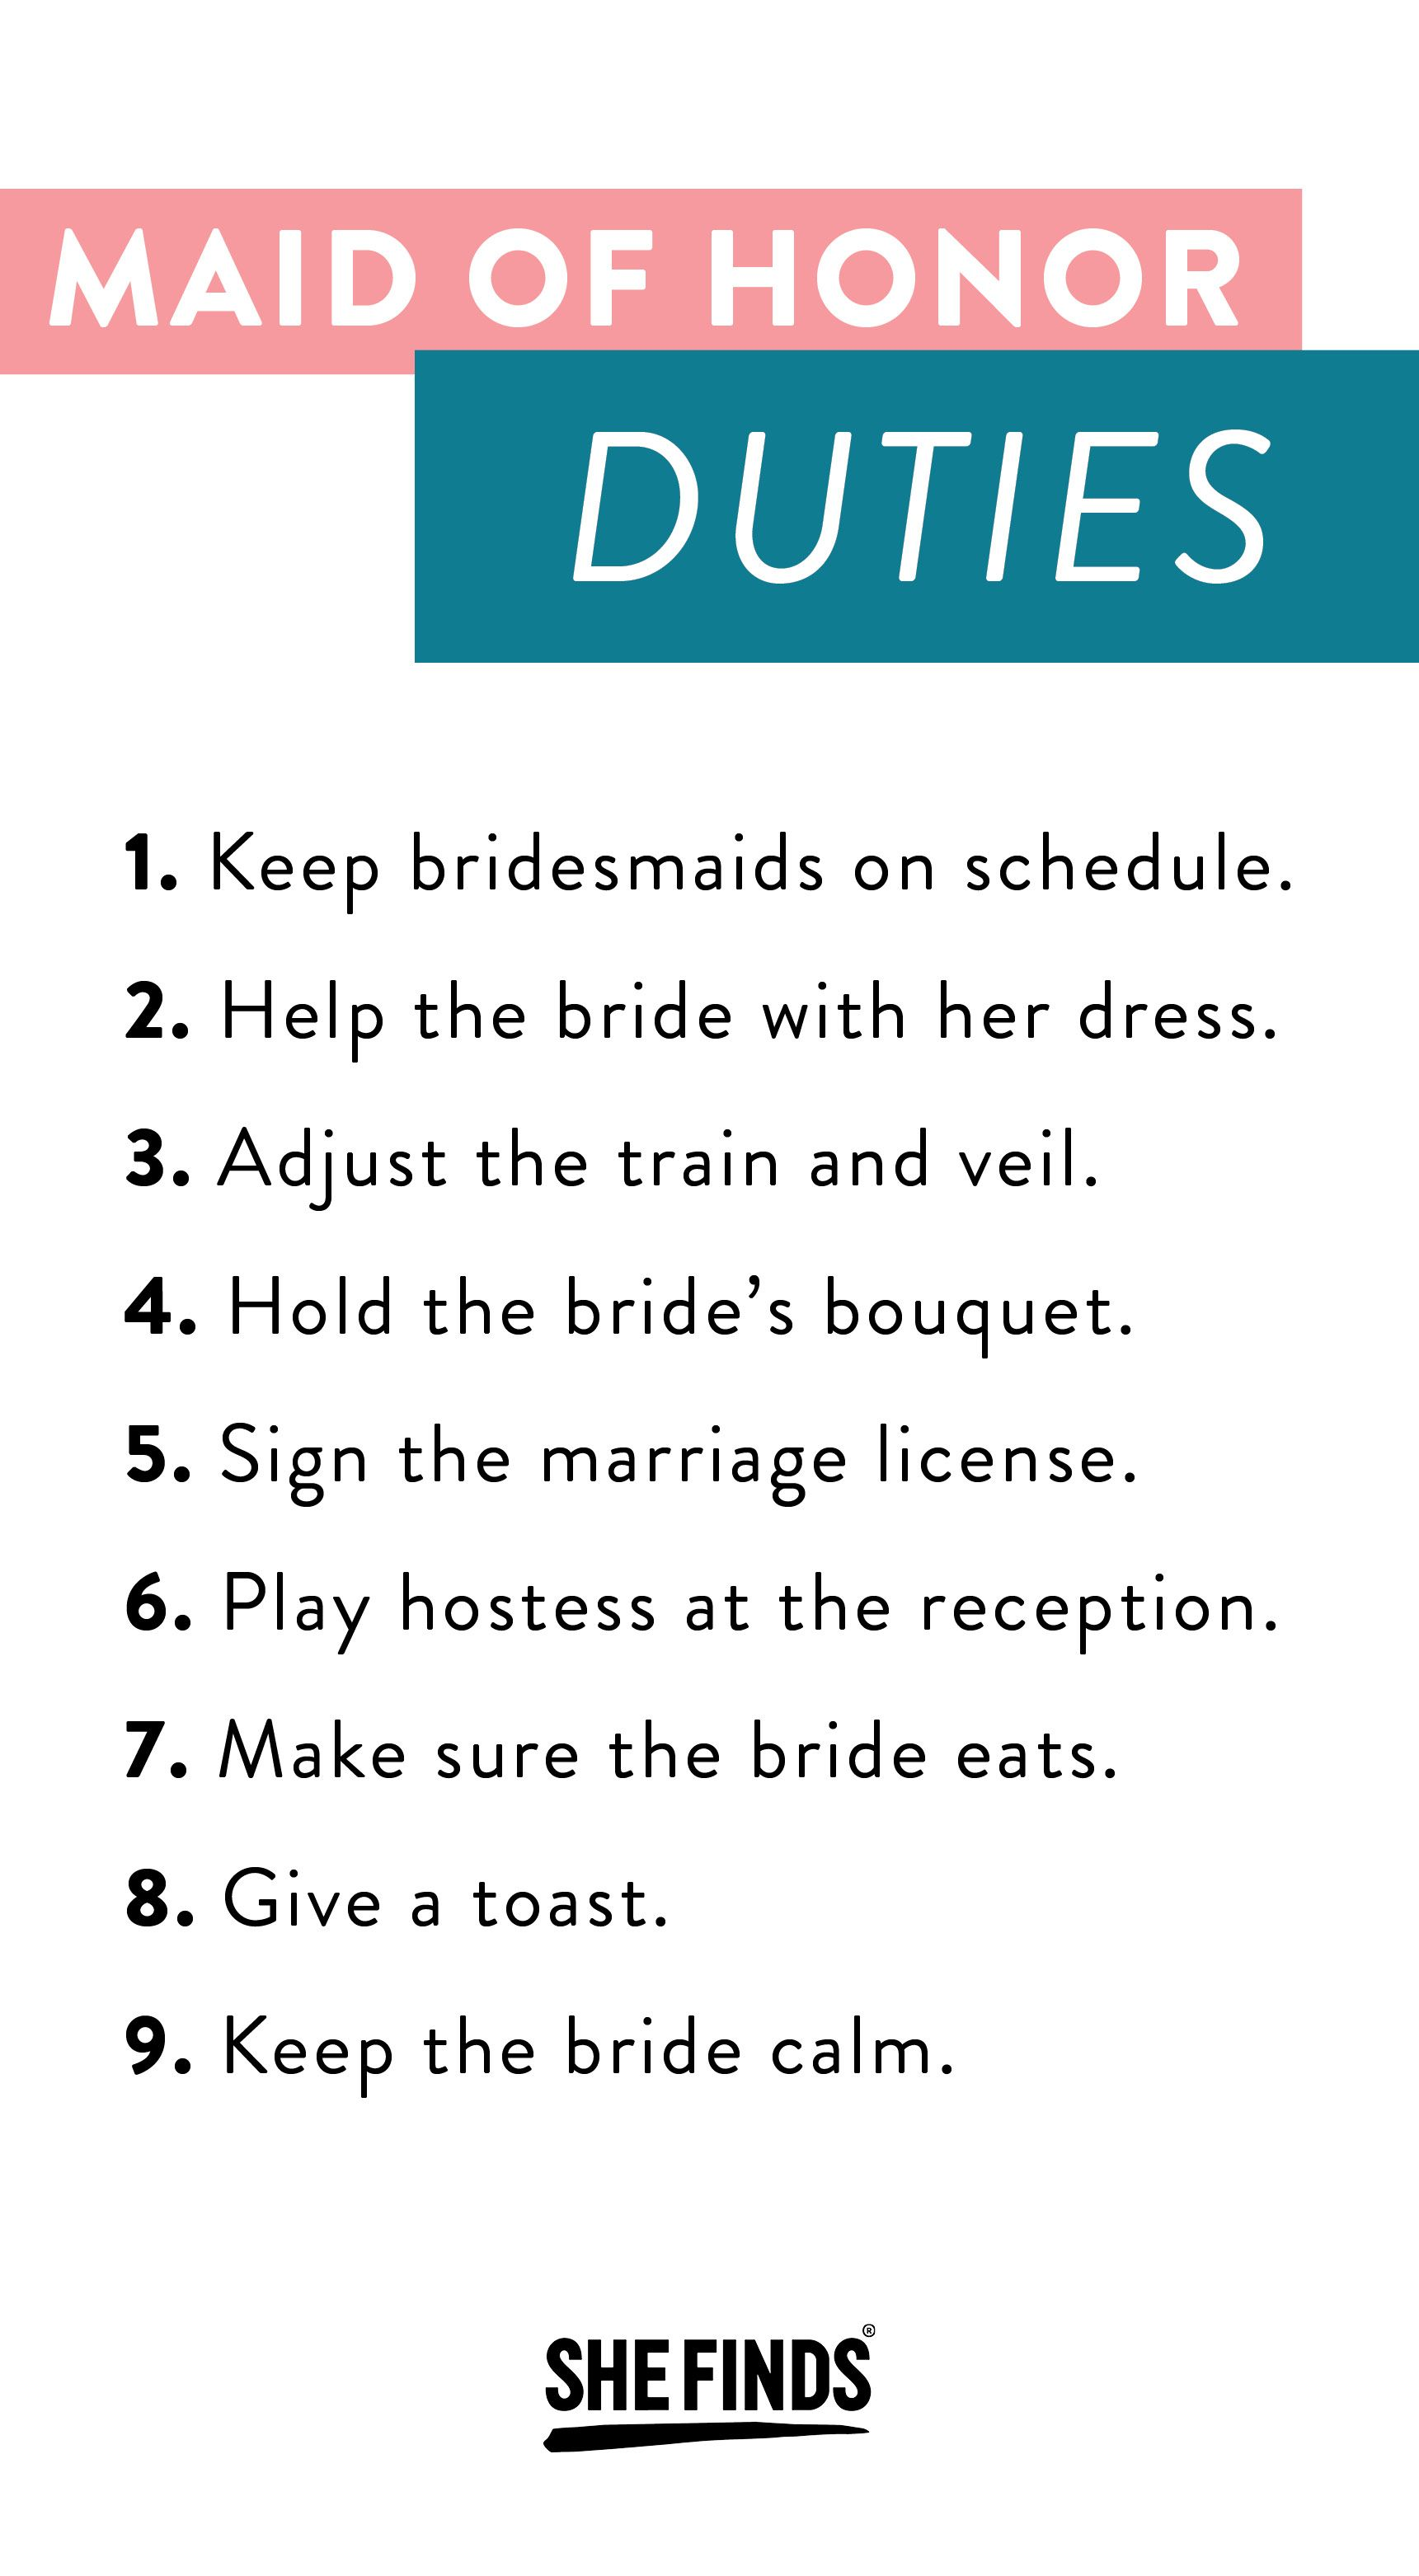 maid of honor duties | tips/advice | pinterest | maids, wedding